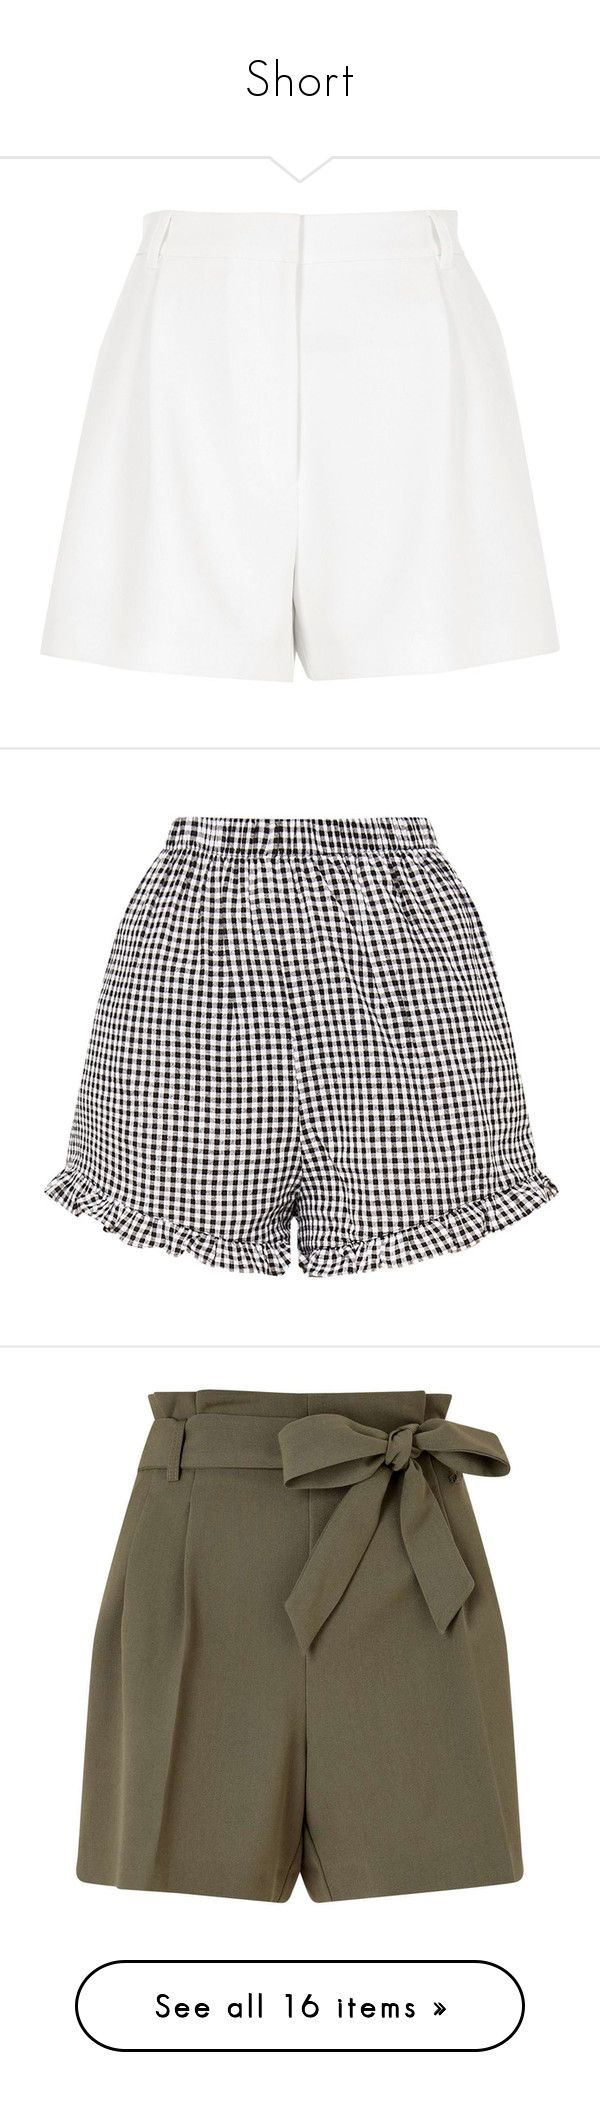 """Short"" by francescabi ❤ liked on Polyvore featuring shorts, bottoms, smart shorts, white, women, high rise shorts, high-waisted shorts, white high waisted shorts, river island and high-rise shorts"